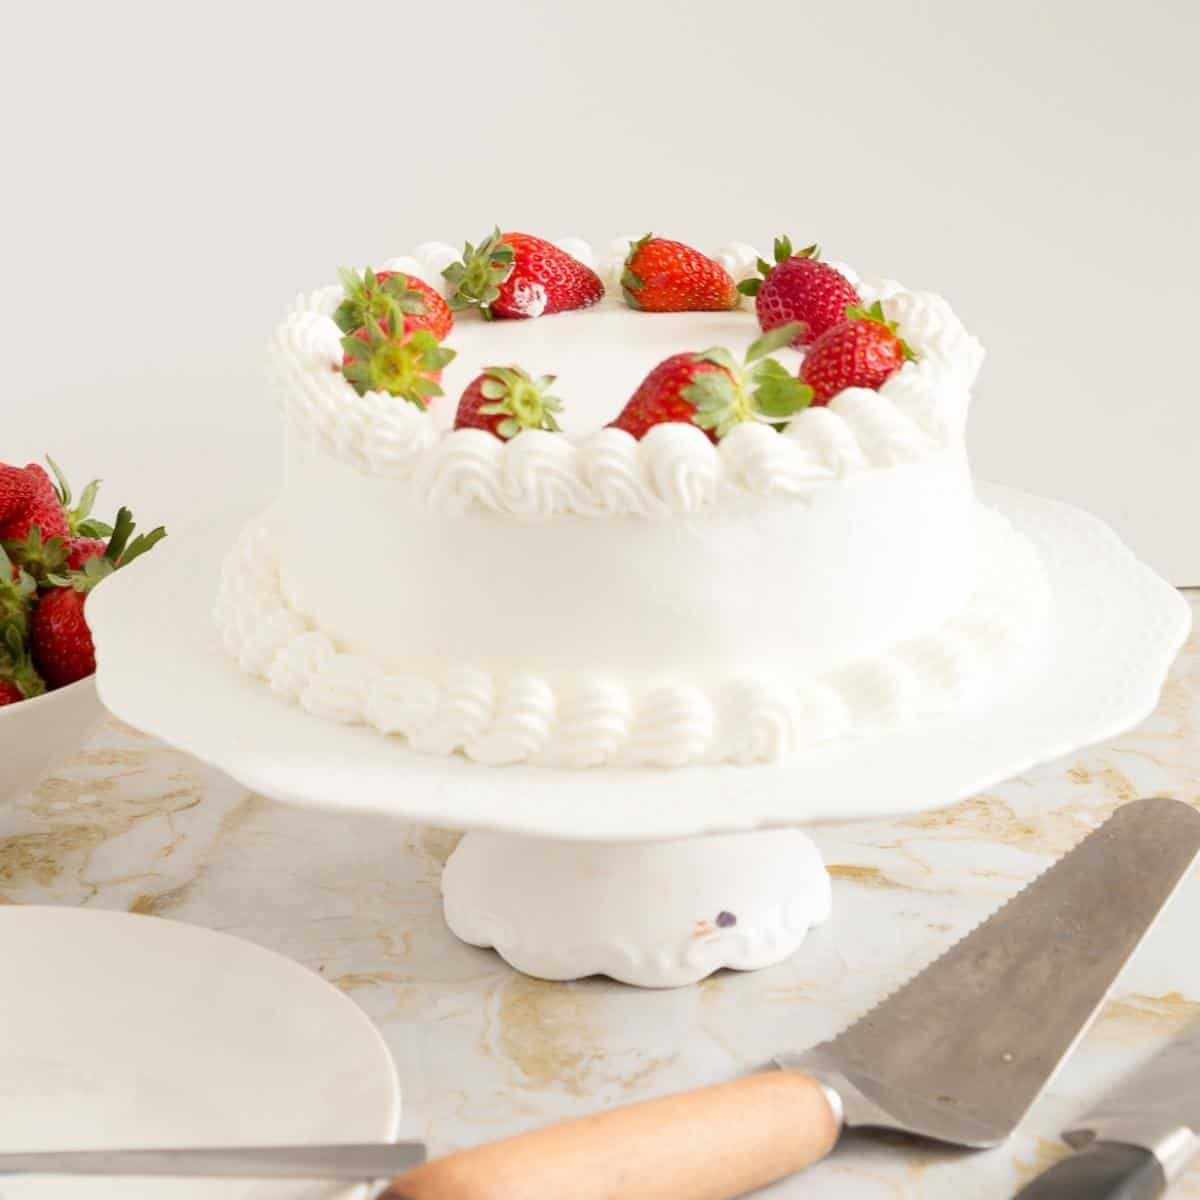 A whipped cream frosted strawberry cake.